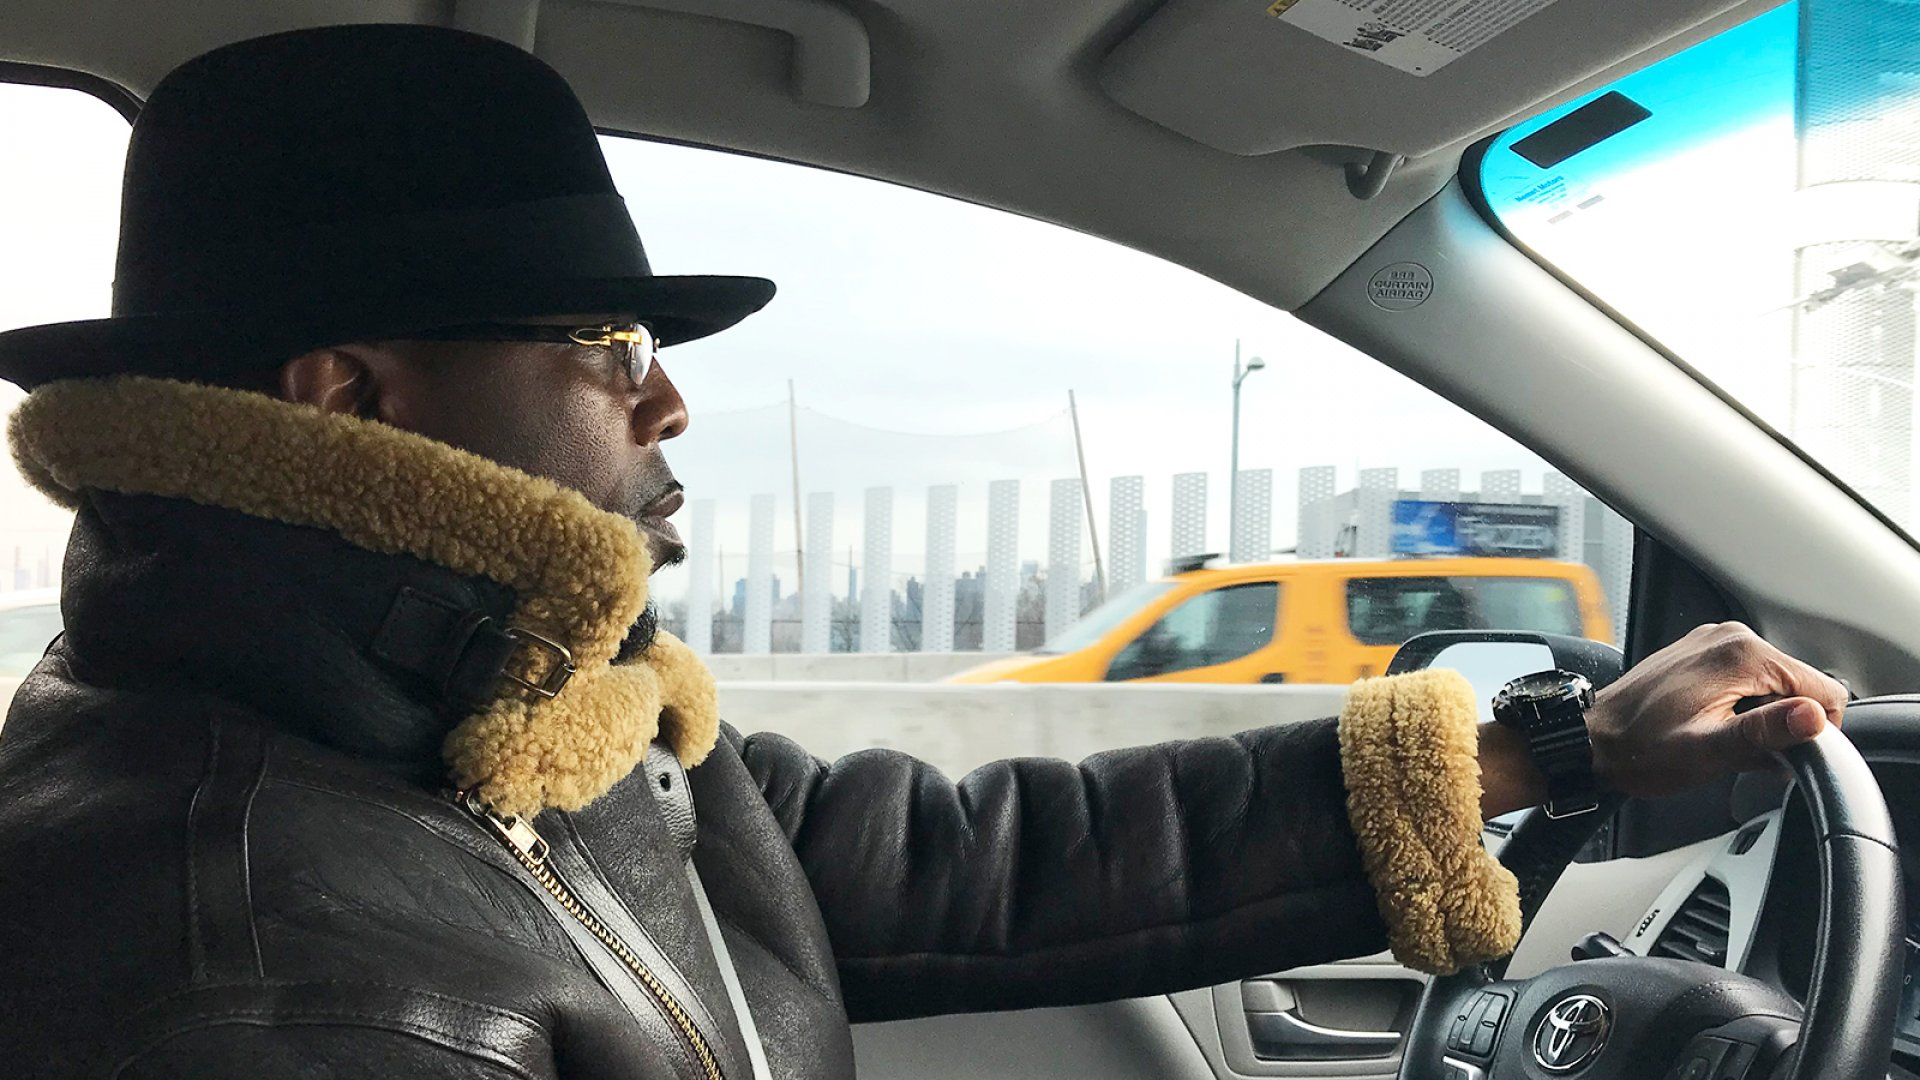 Calvin Buari at the wheel. He used to drive a BMW and sell crack. Now he drives a minivan and hopes to build his small transportation company into a multimillion-dollar enterprise.